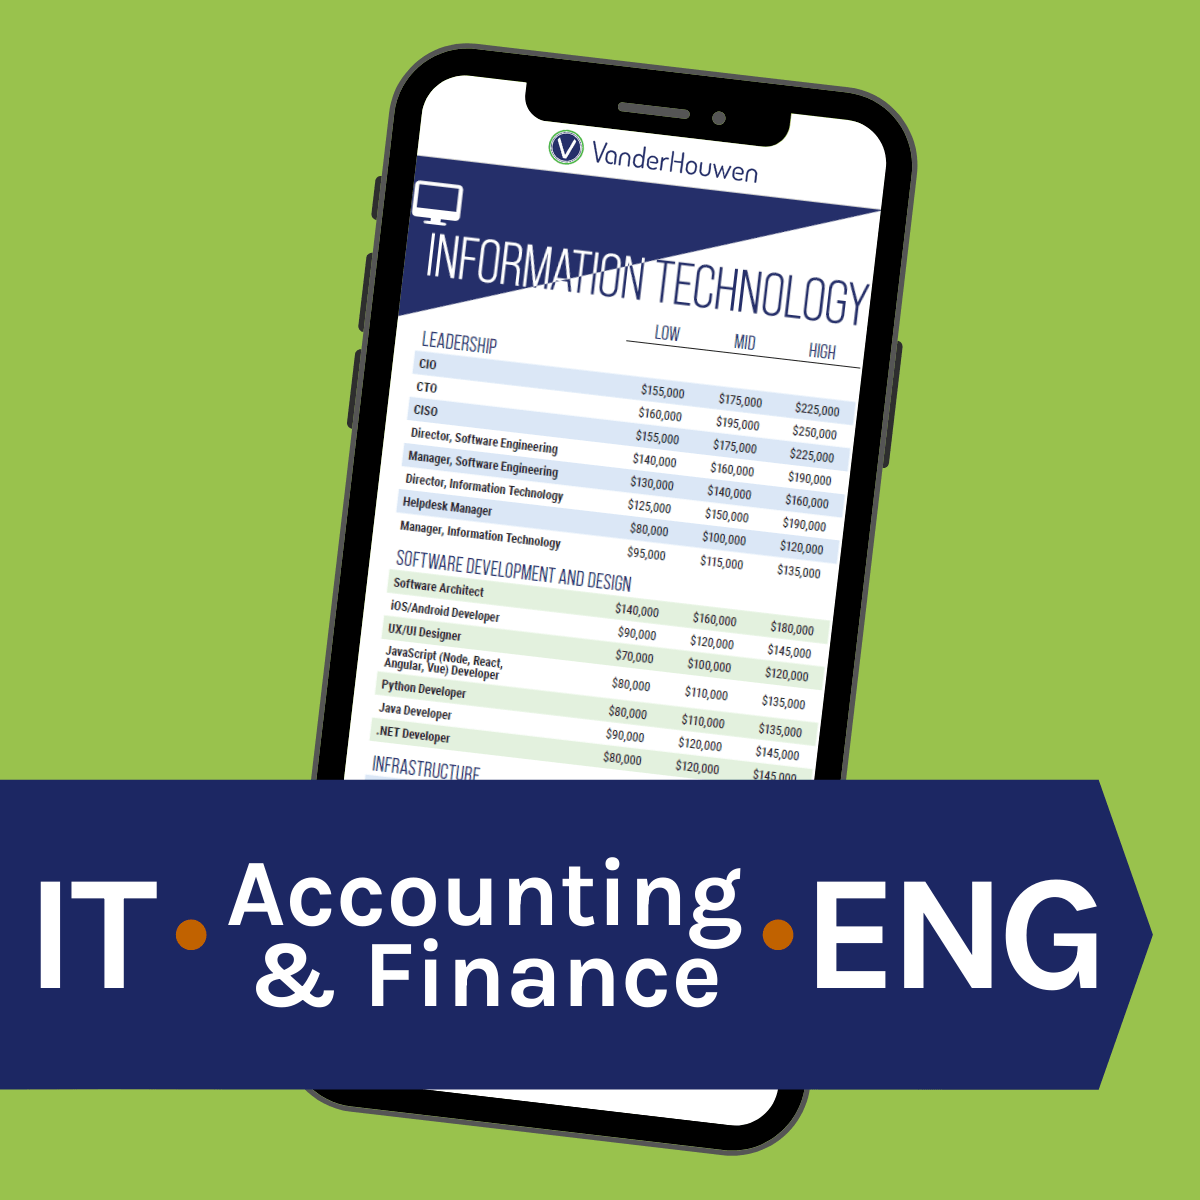 Salary Guide available for IT, Engineering, Accounting, and Finance. Pictured on a mobile device